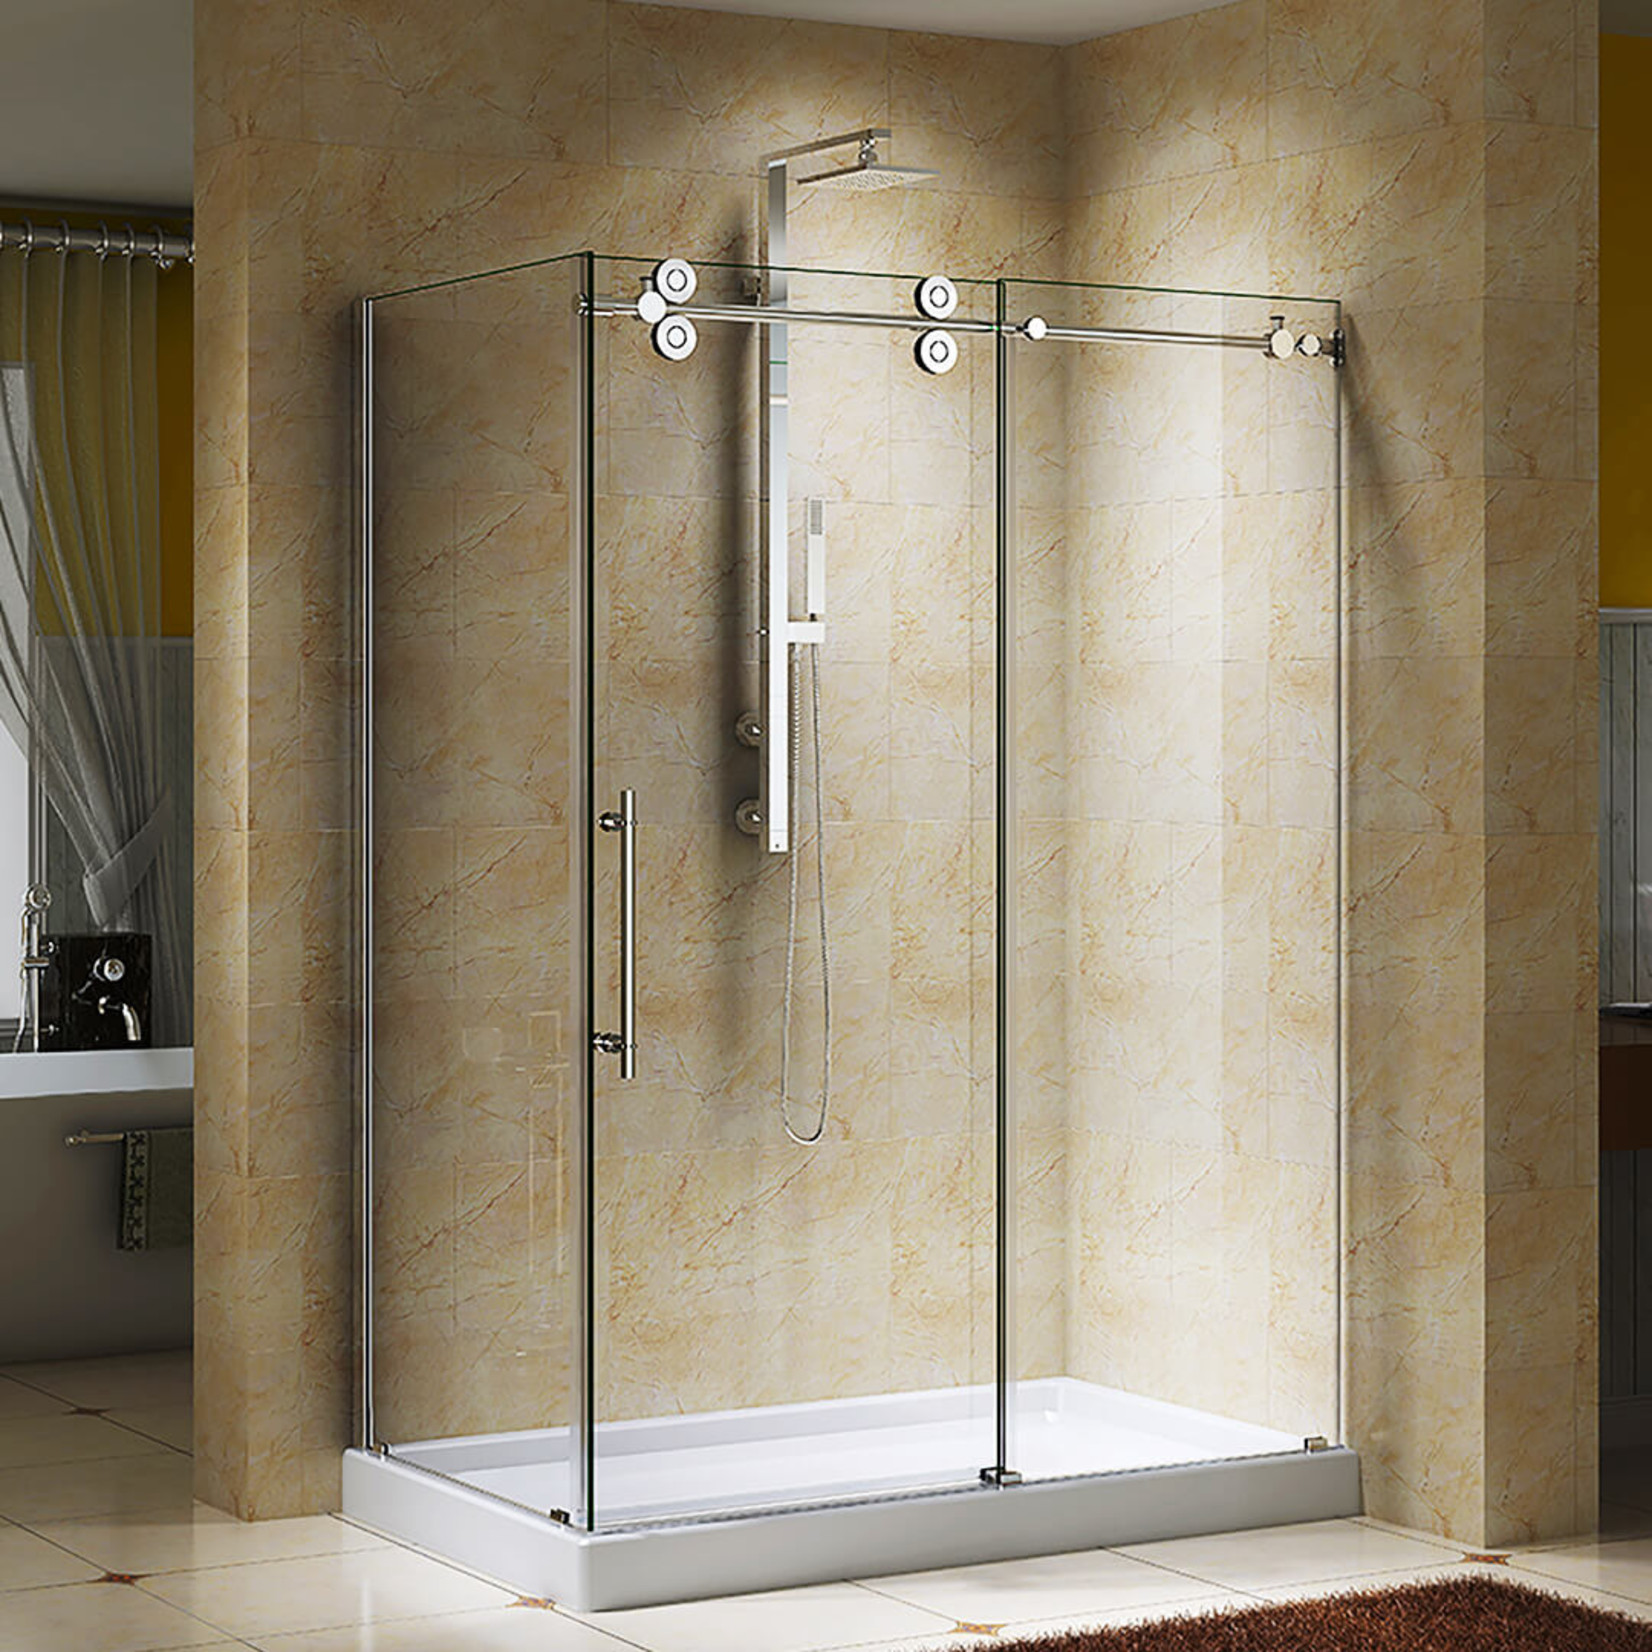 Reversible shower set 10mm chrome Zirkon Jade series